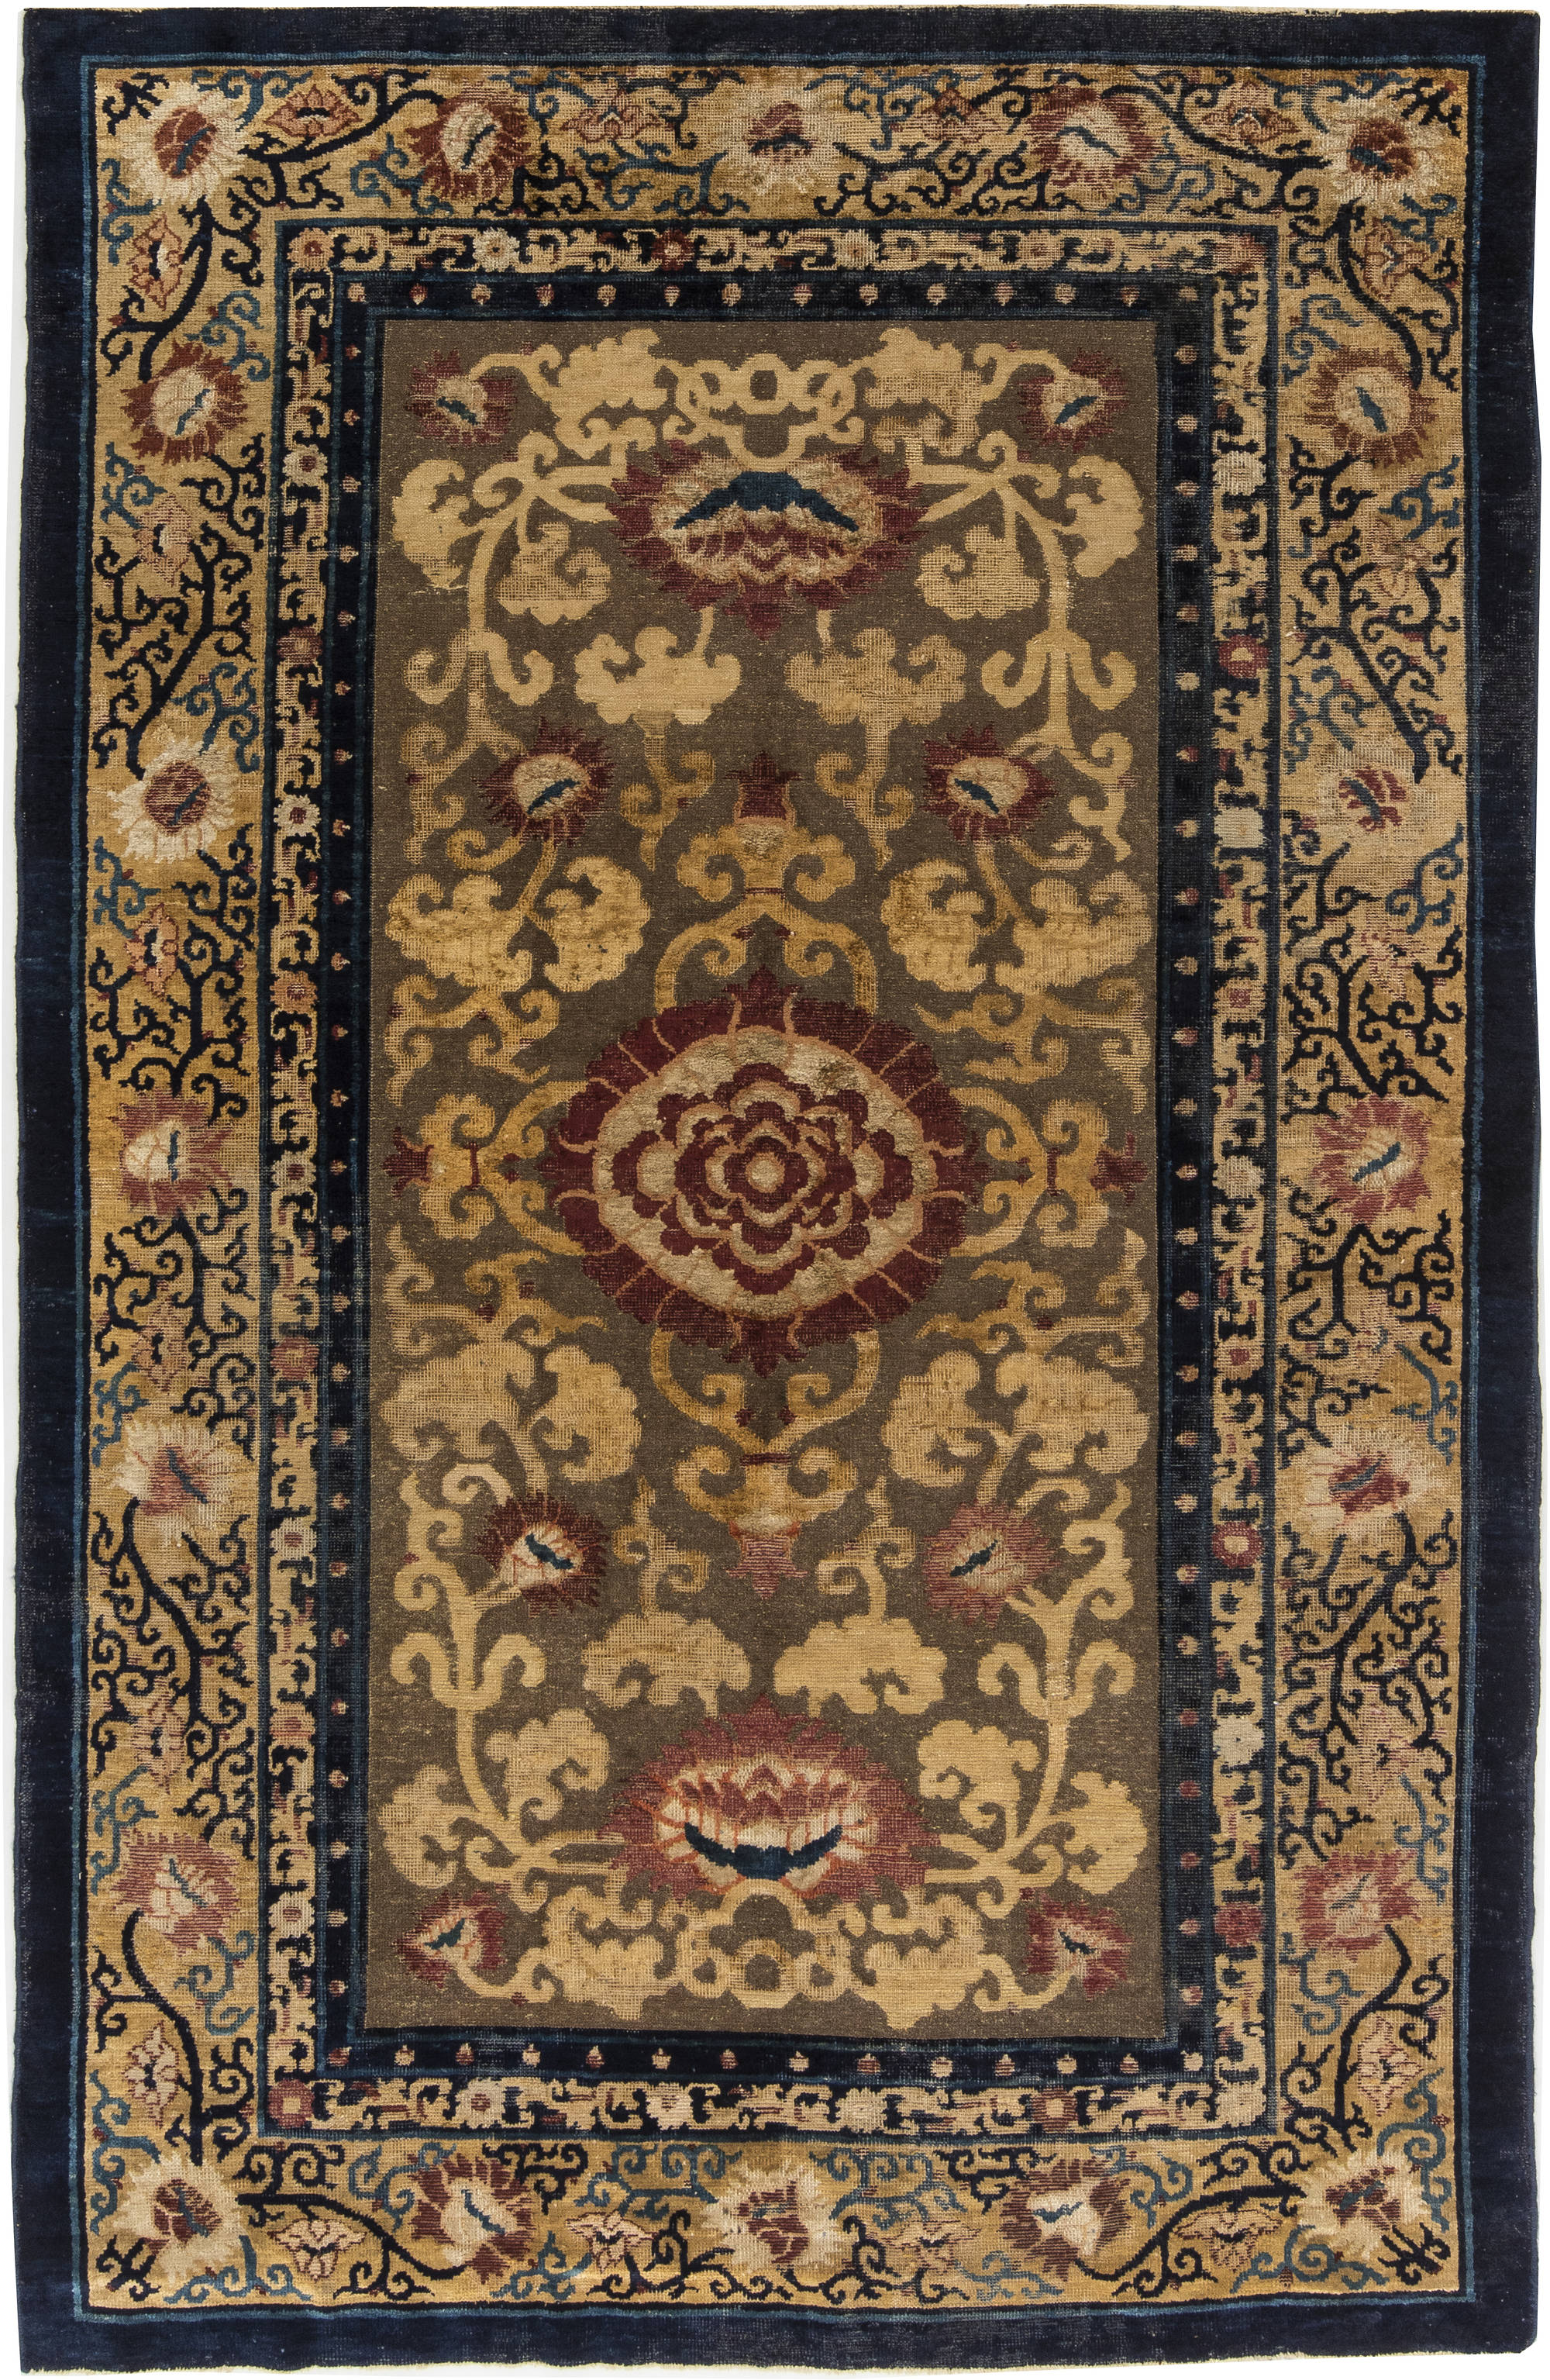 chinese rugs vintage chinese rug bb6282. arrow down  47161db02bae4ef92bdede423862e8f0c2b91f81311572b5a8bb90eef3001a34 ODWQAQC